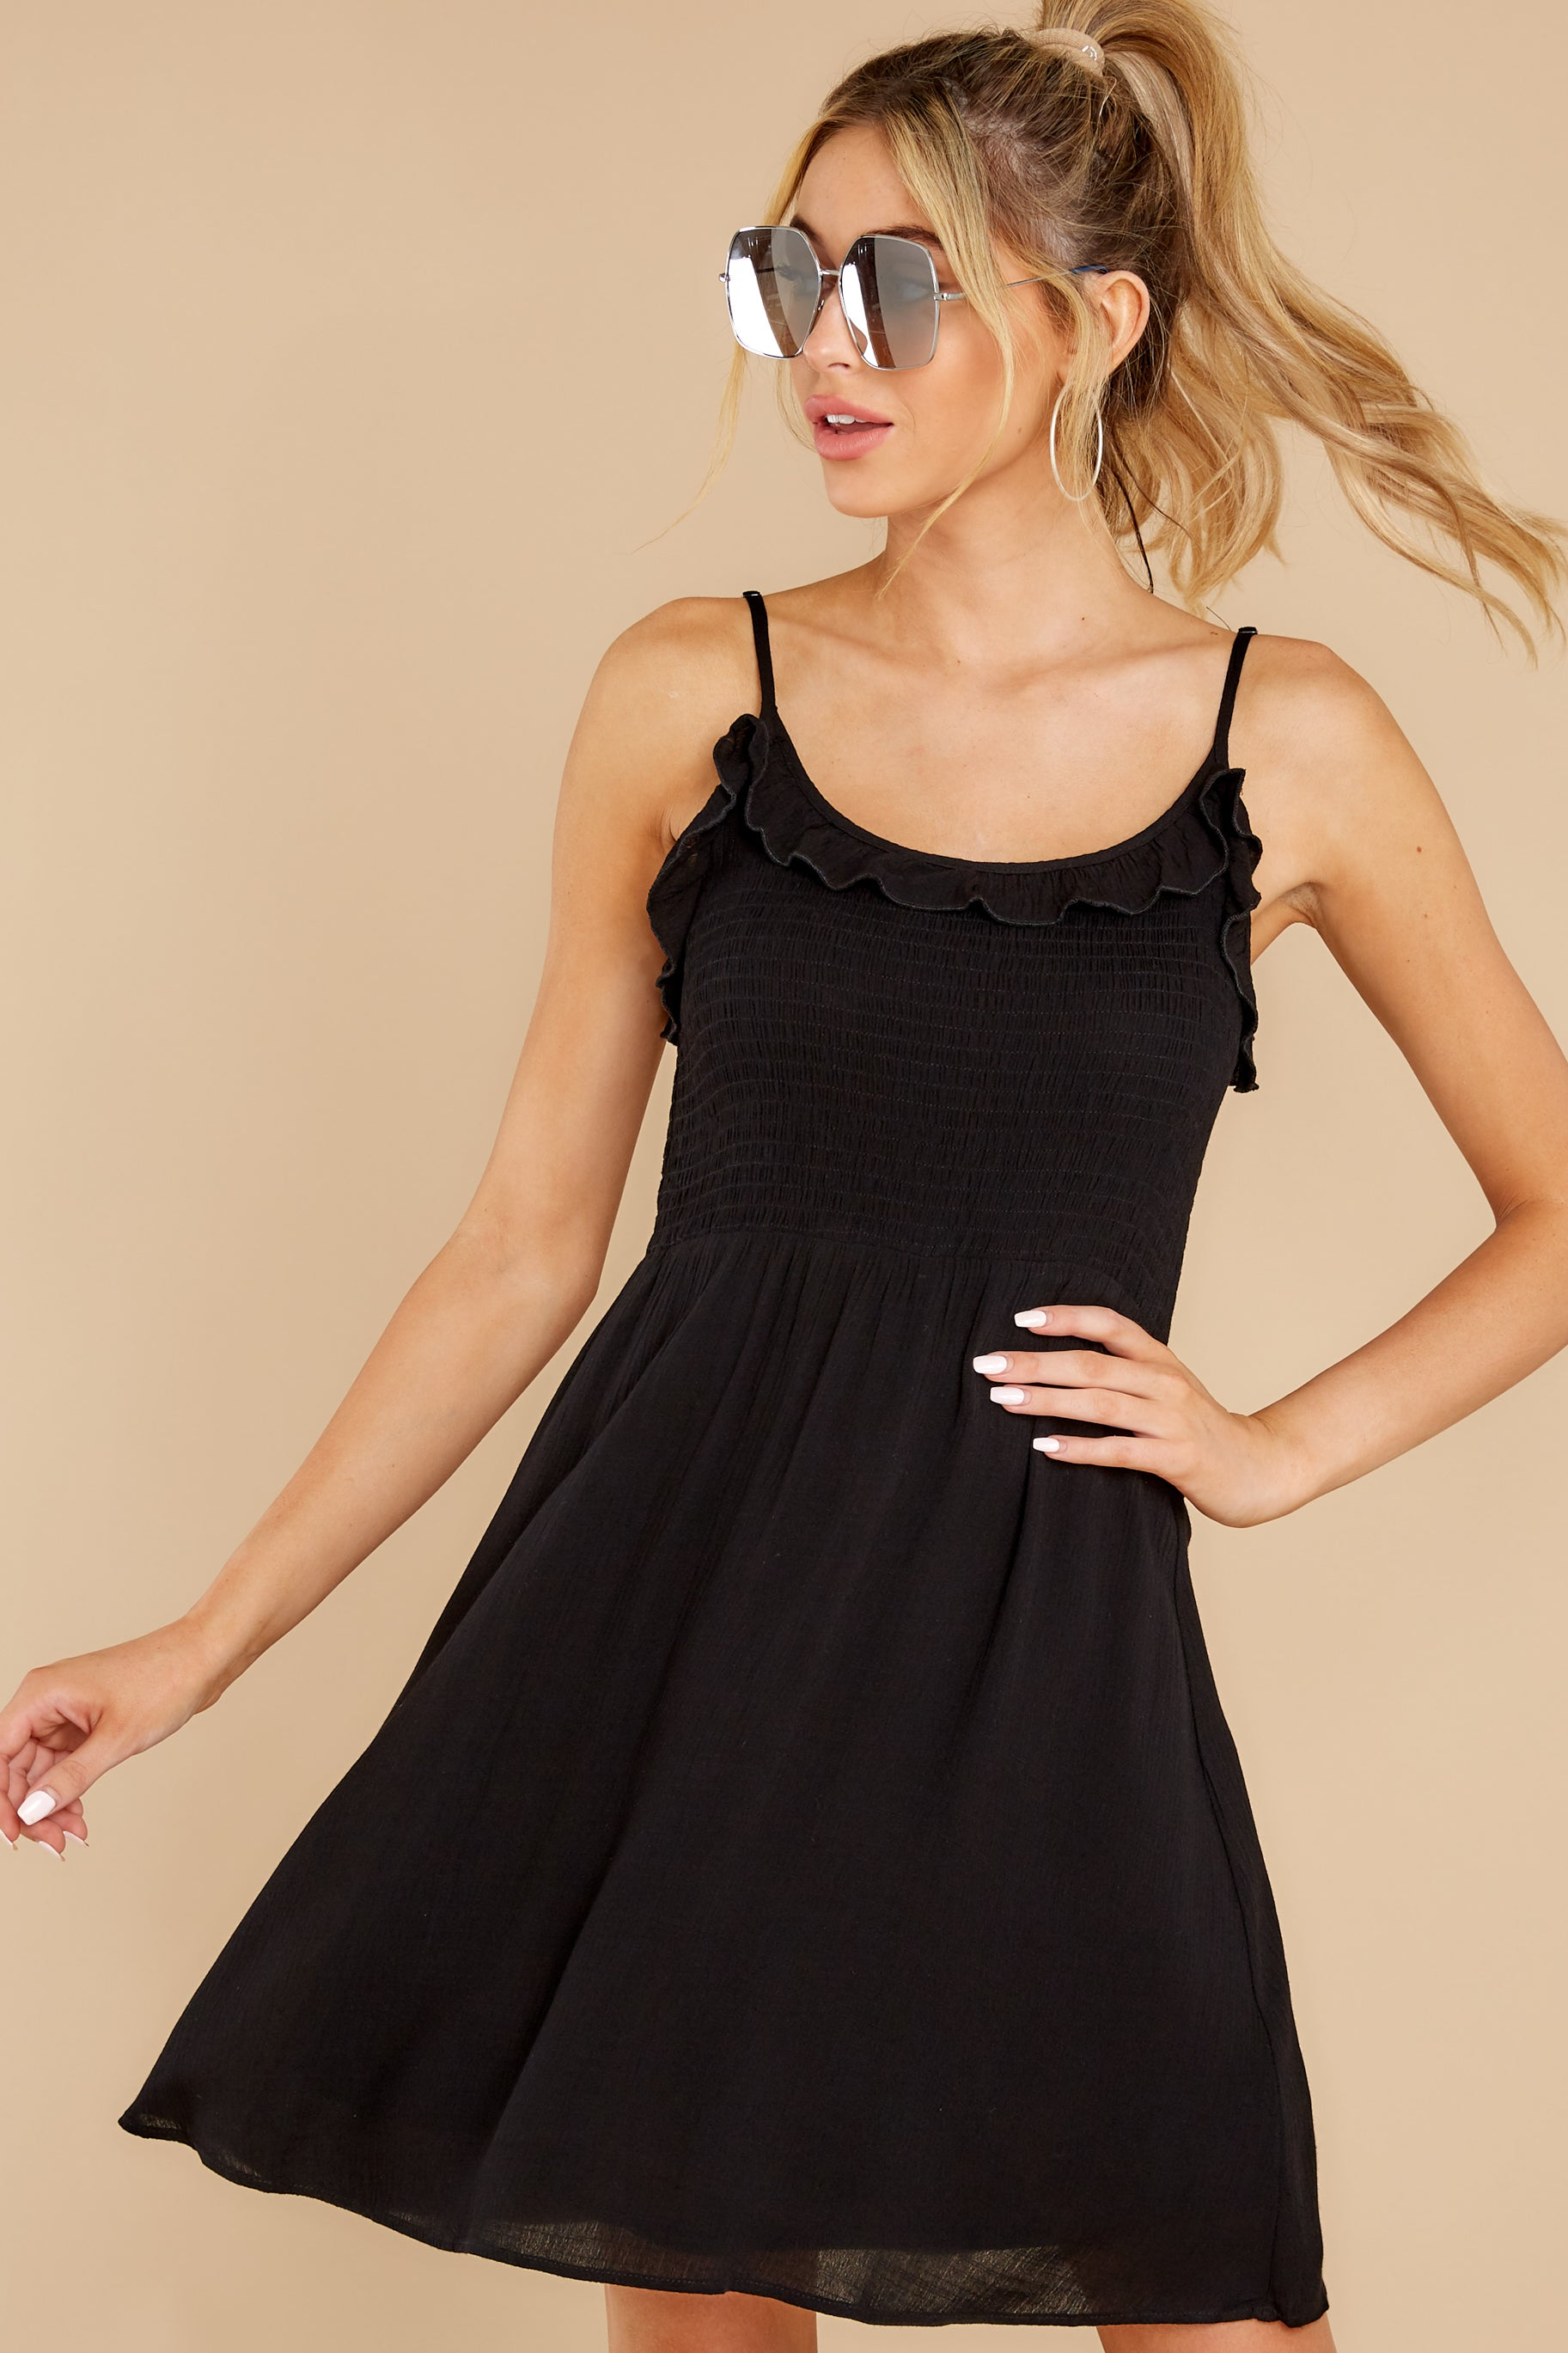 6 As You Are Black Dress at reddress.com